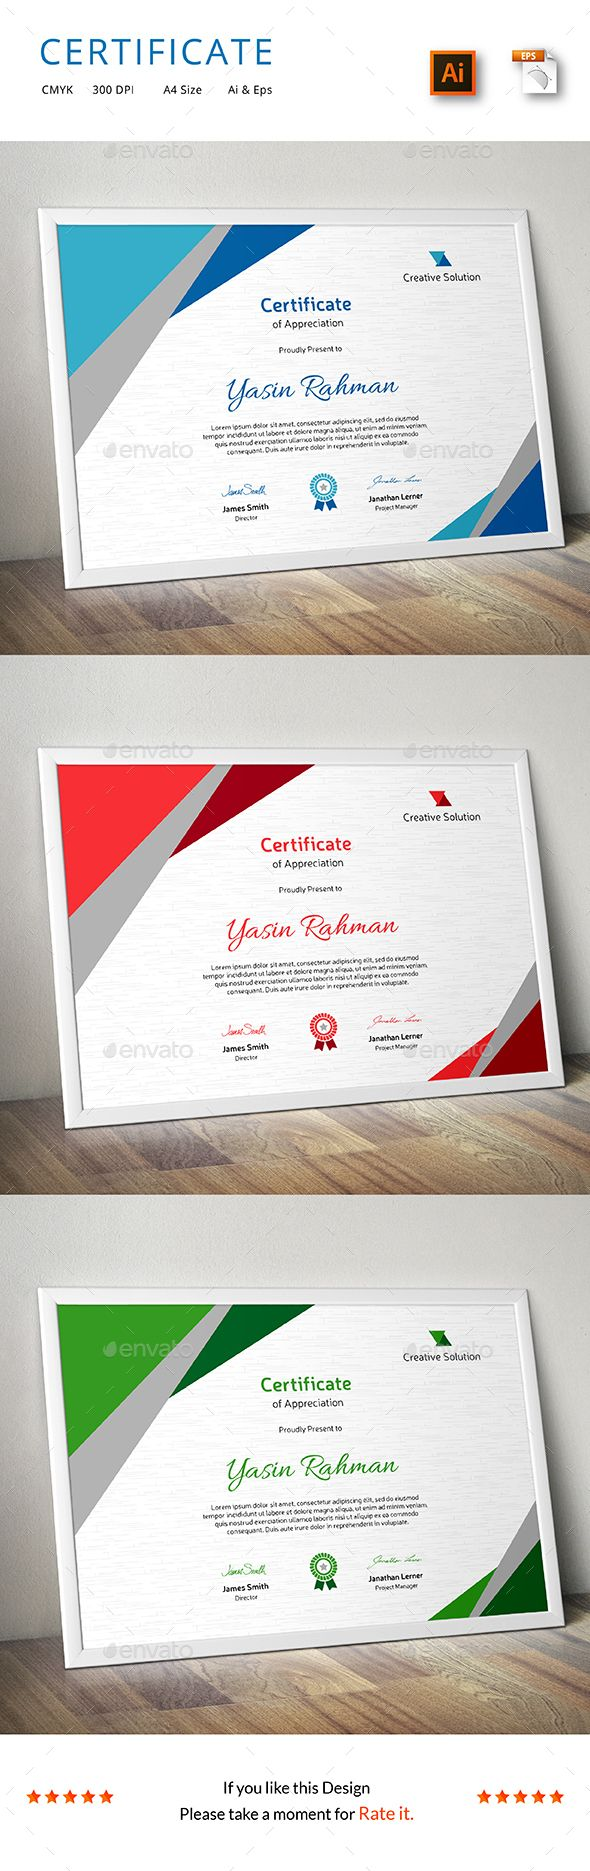 Certificate Template Vector EPS, AI. Download here: http://graphicriver.net/item/certificate/14165556?ref=ksioks